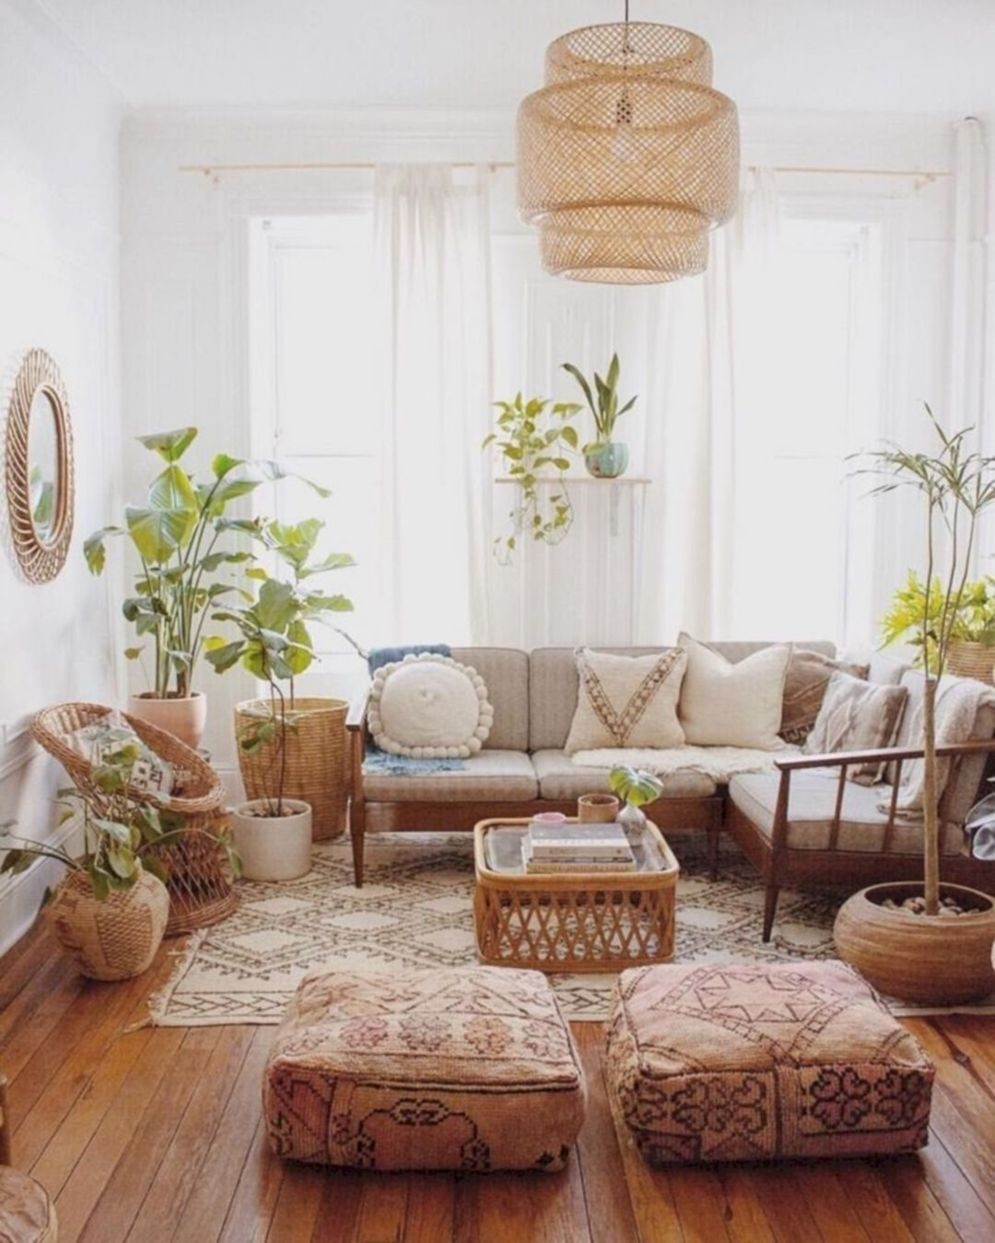 Expressive interior display in multilayering textures and colors showing artsy interior schemes with retro and vintage accents Image 18